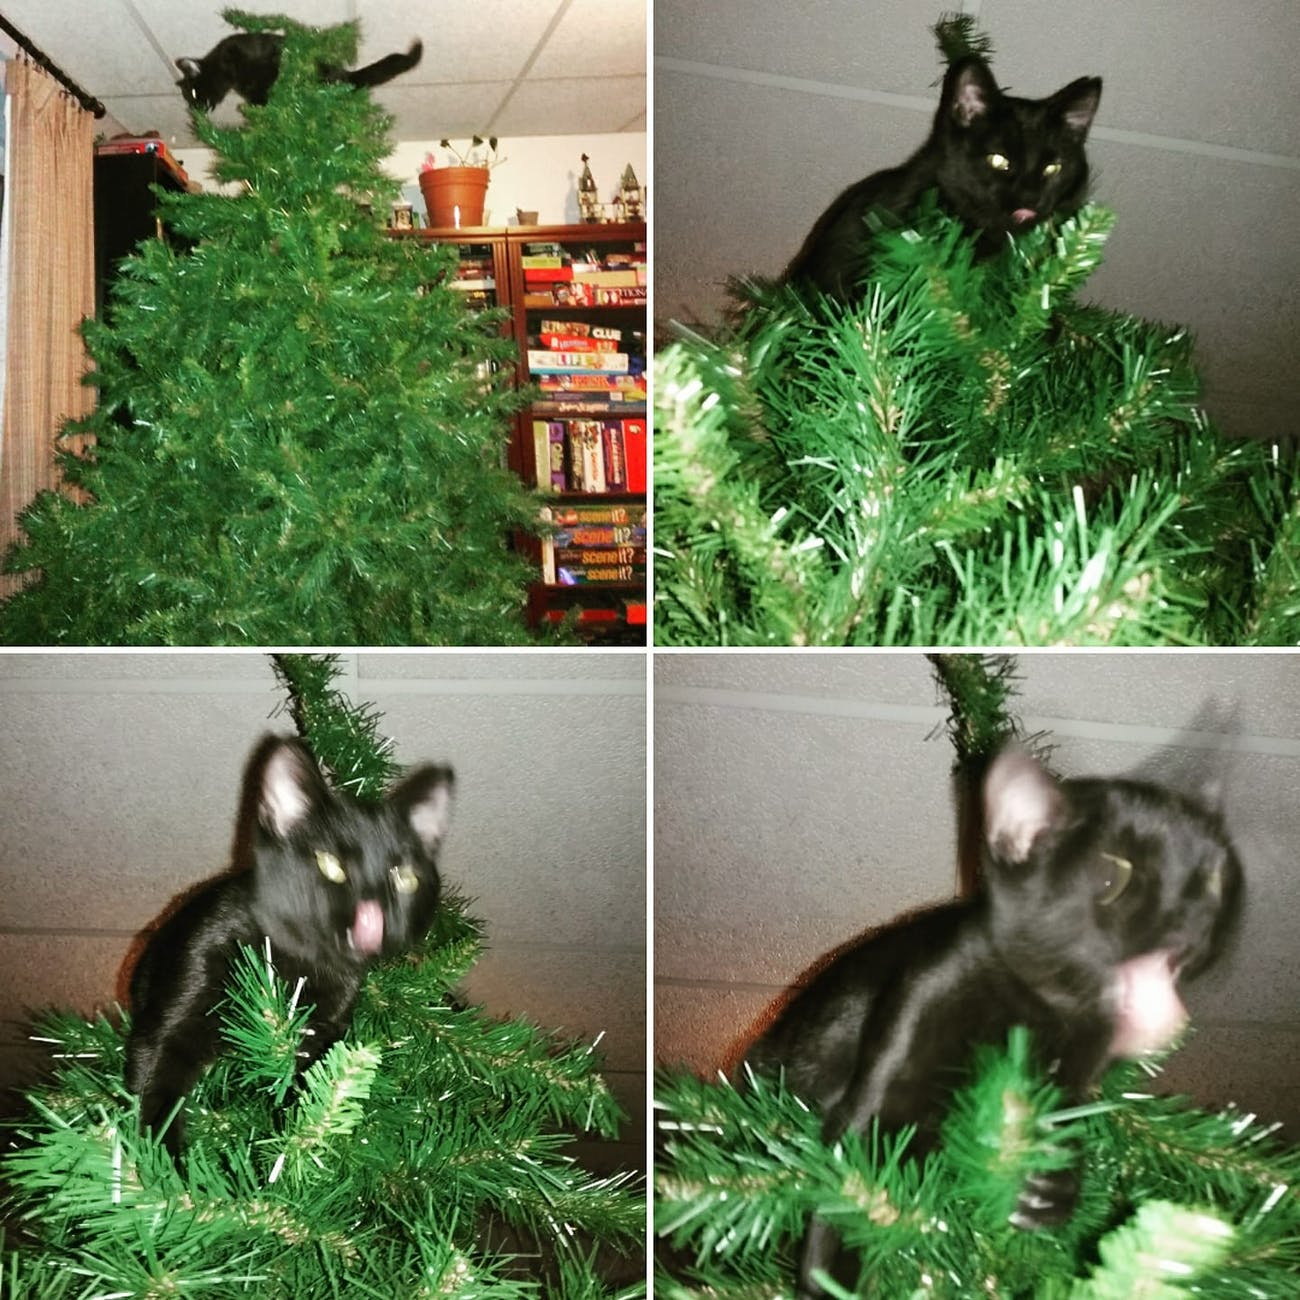 Why Do Cats Like Christmas Trees A Scientist Explains Inverse